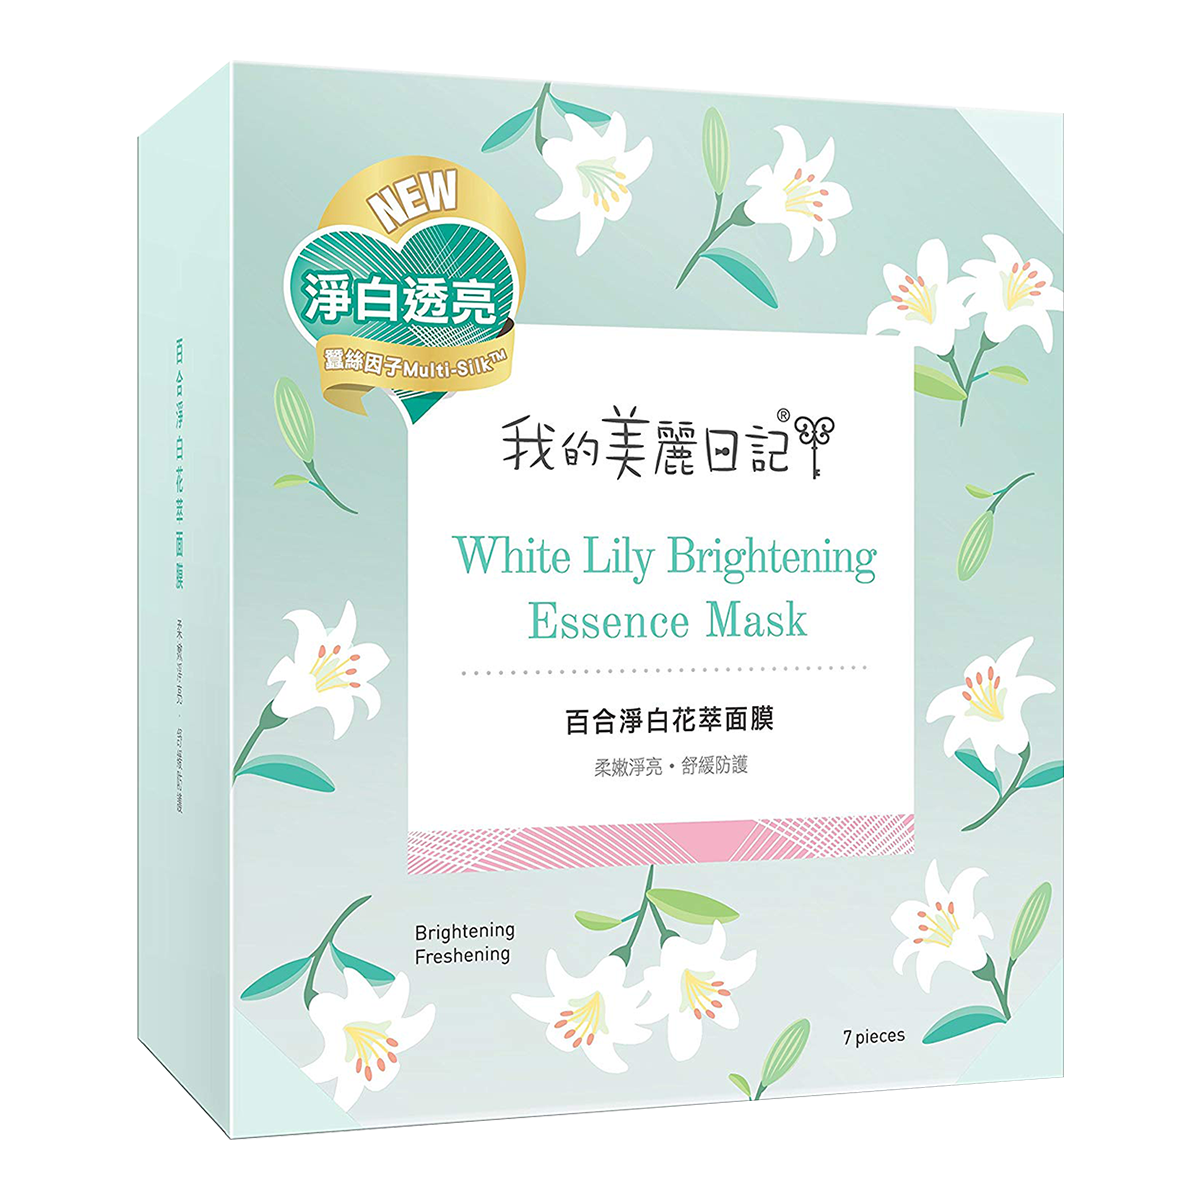 MY BEAUTY DIARY White Lily Brightening Essence Mask 7sheets